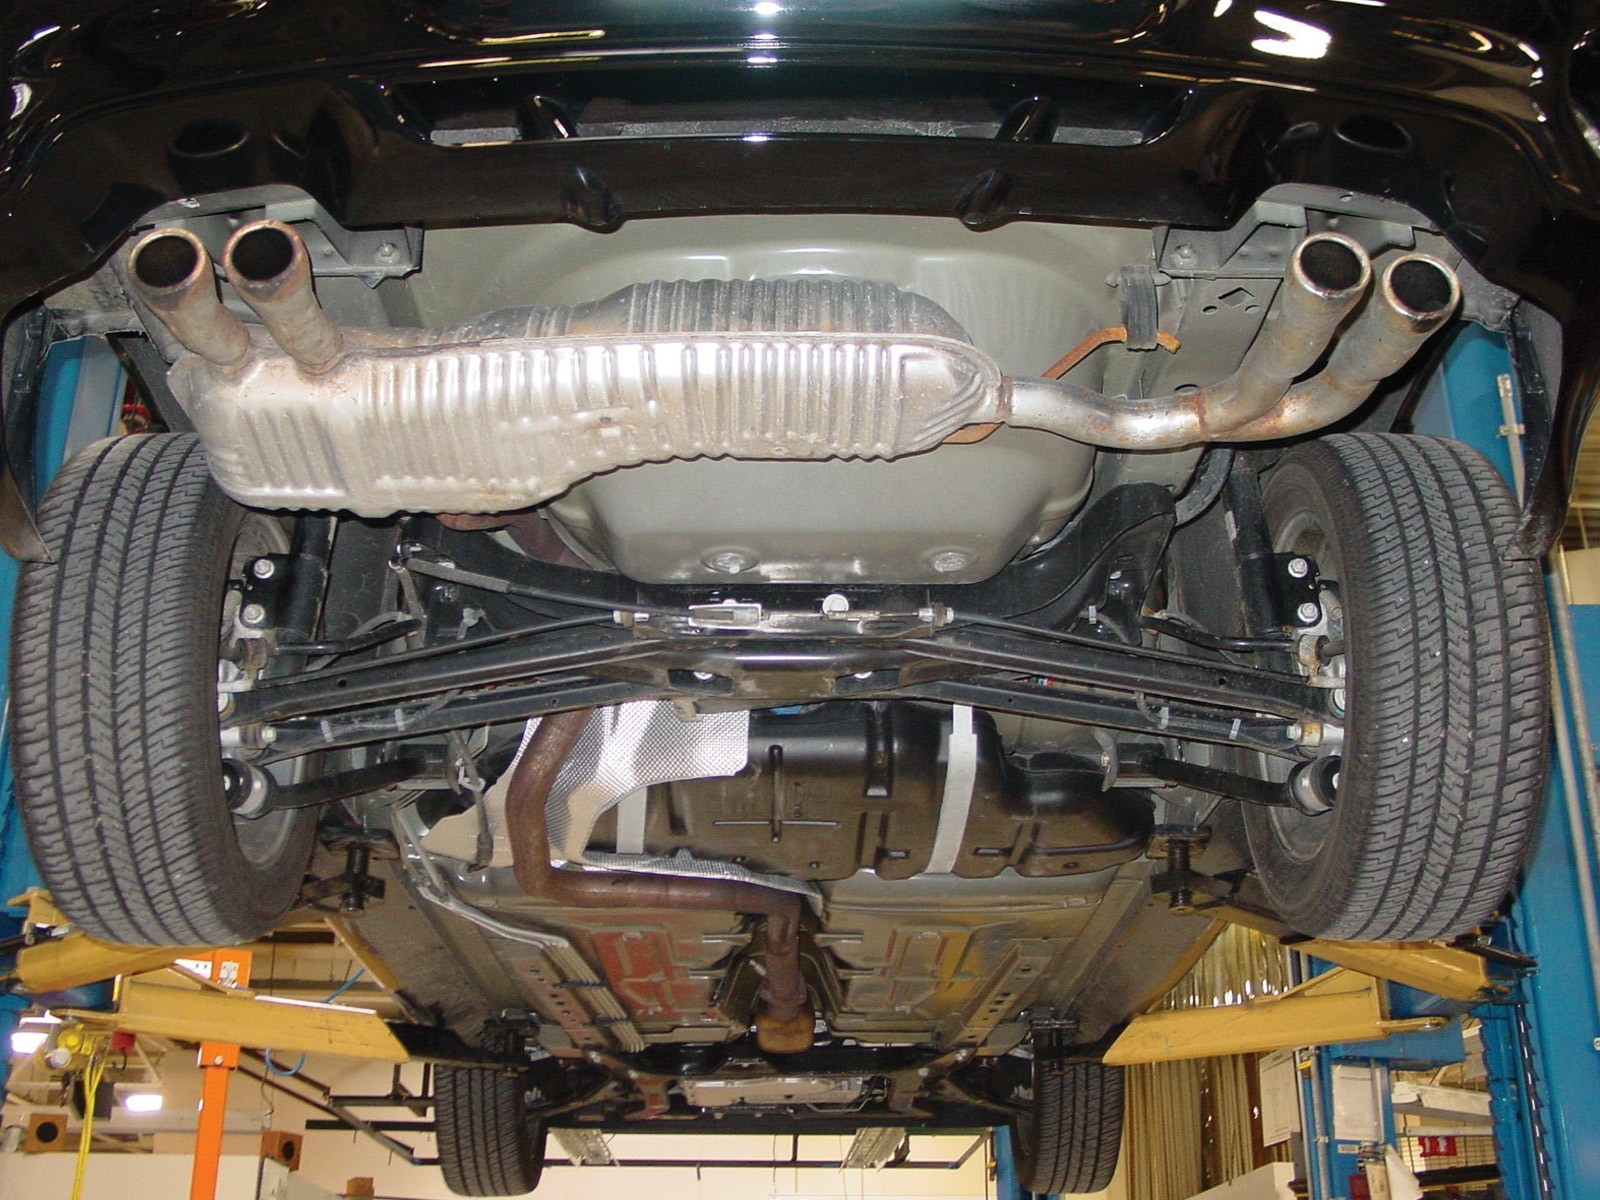 2001 Pontiac Grand Am Se Engine Diagram Grand Am Bolt S Power Mods Yield 20hp In Our 02 Gt Hot Rod Of 2001 Pontiac Grand Am Se Engine Diagram